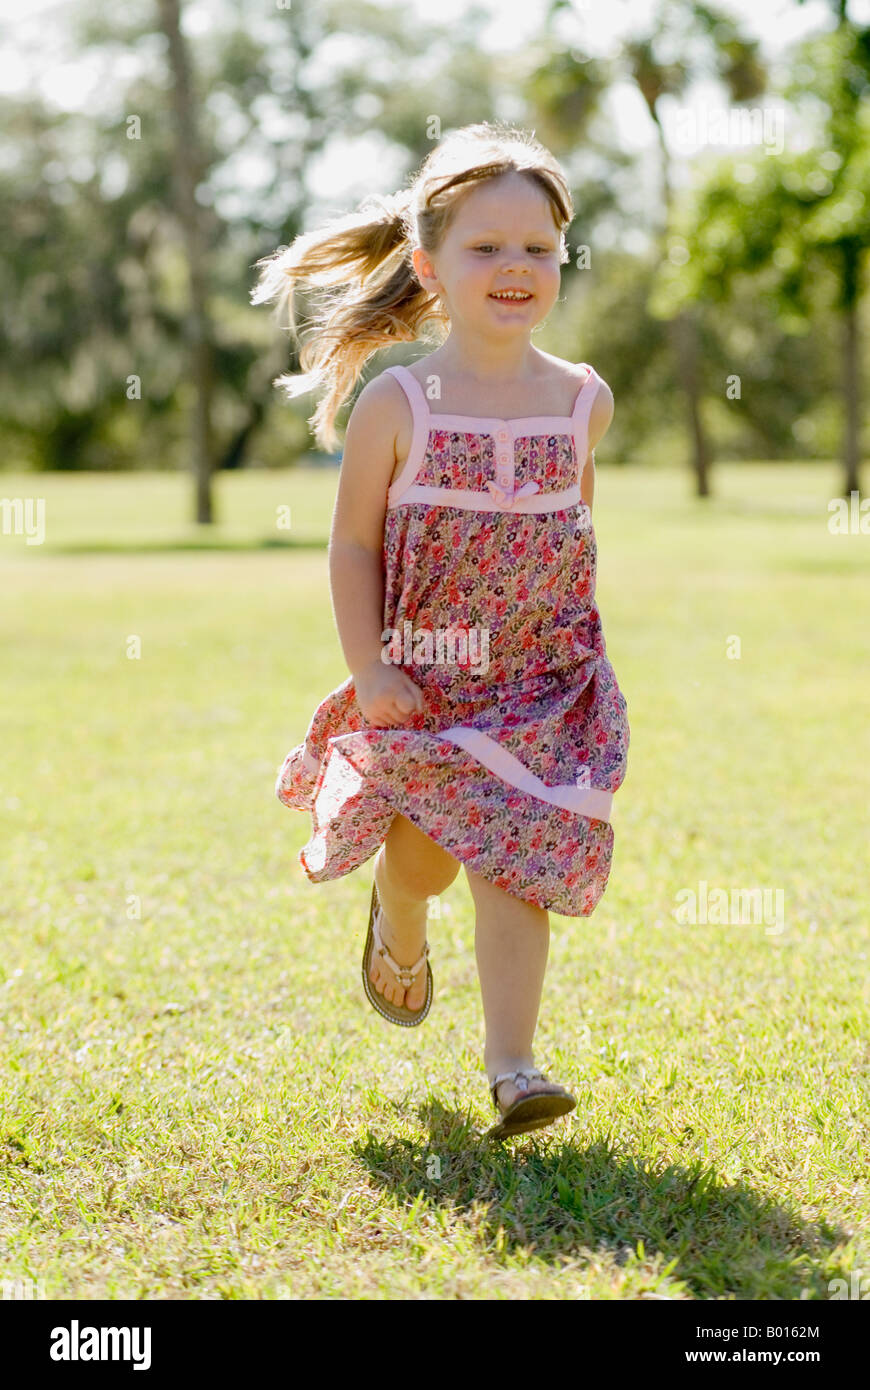 7d8e2a2837 Happiness is a run in the park little girl in sun dress running in park with